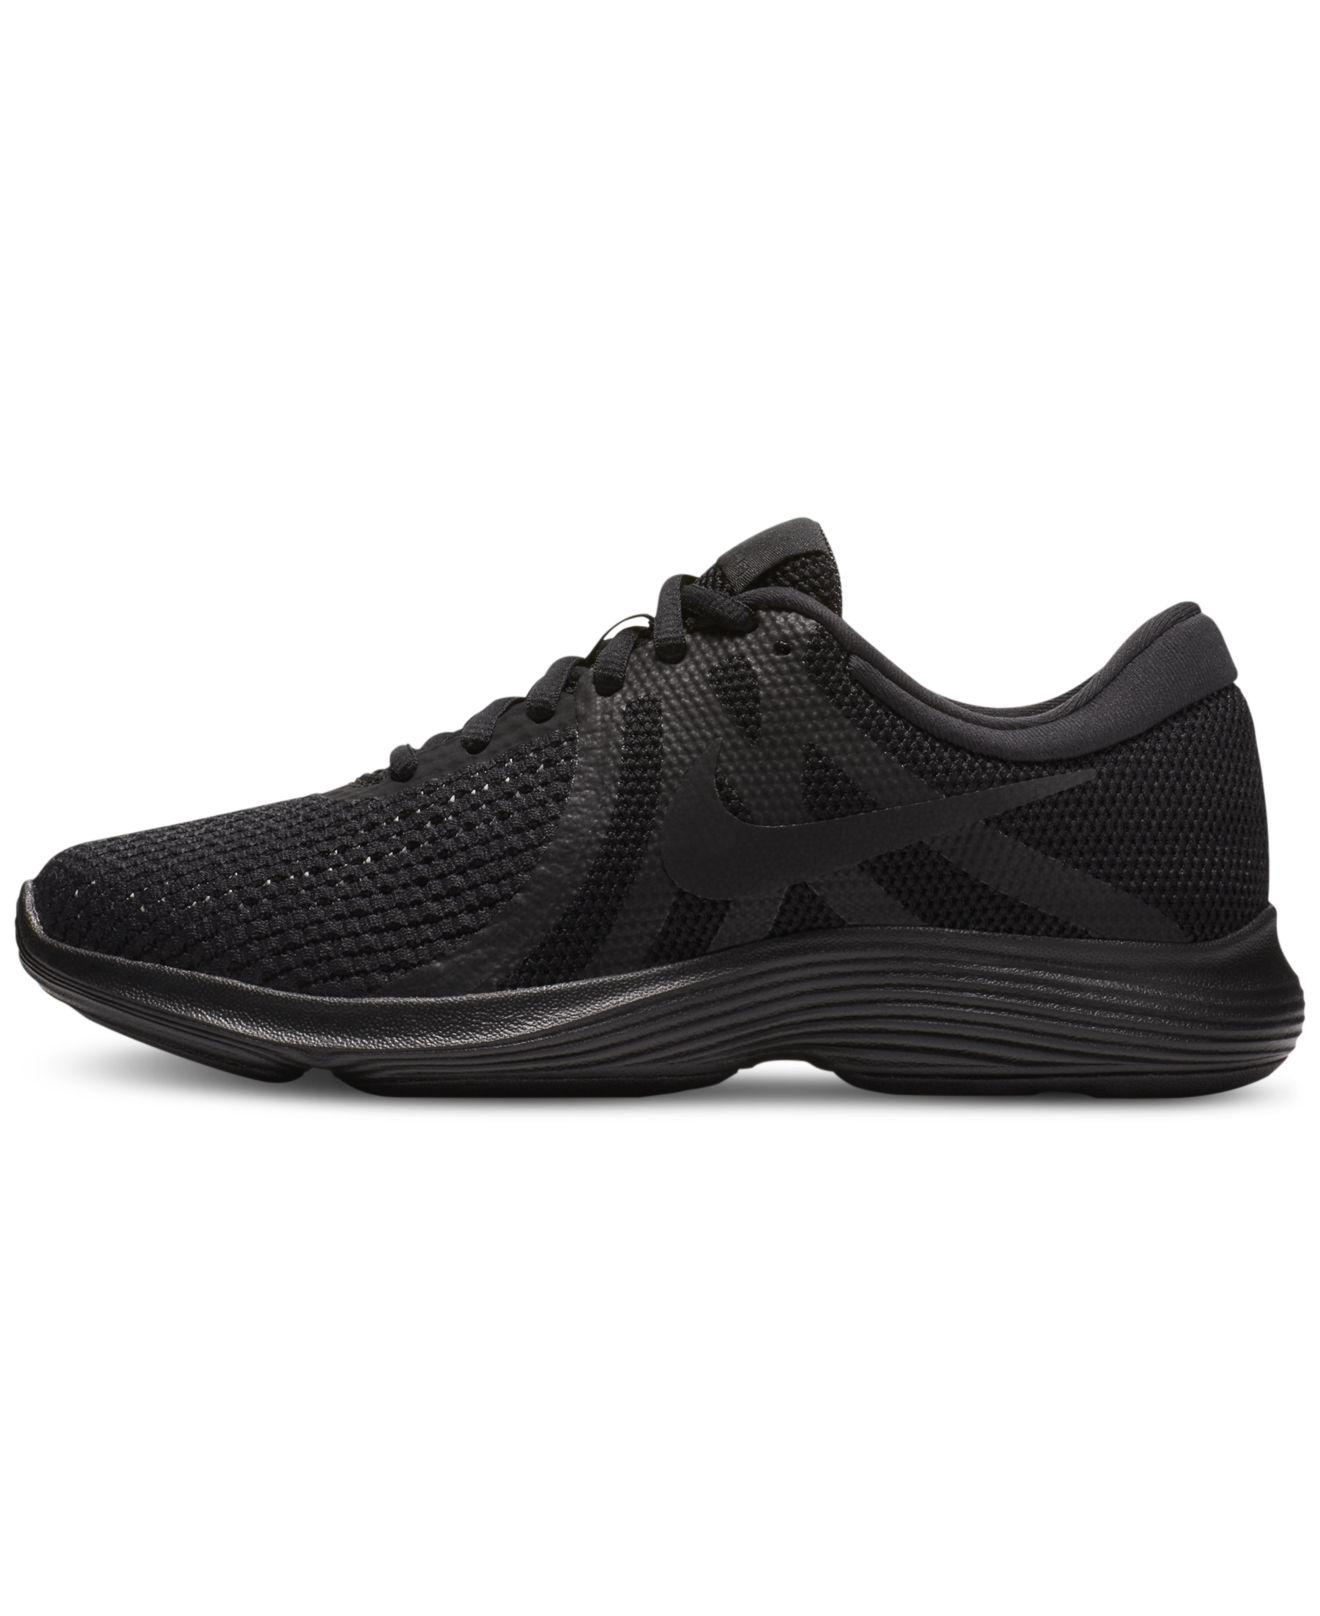 Lyst - Nike Women s Revolution 4 Running Sneakers From Finish Line in Black 748a72e589